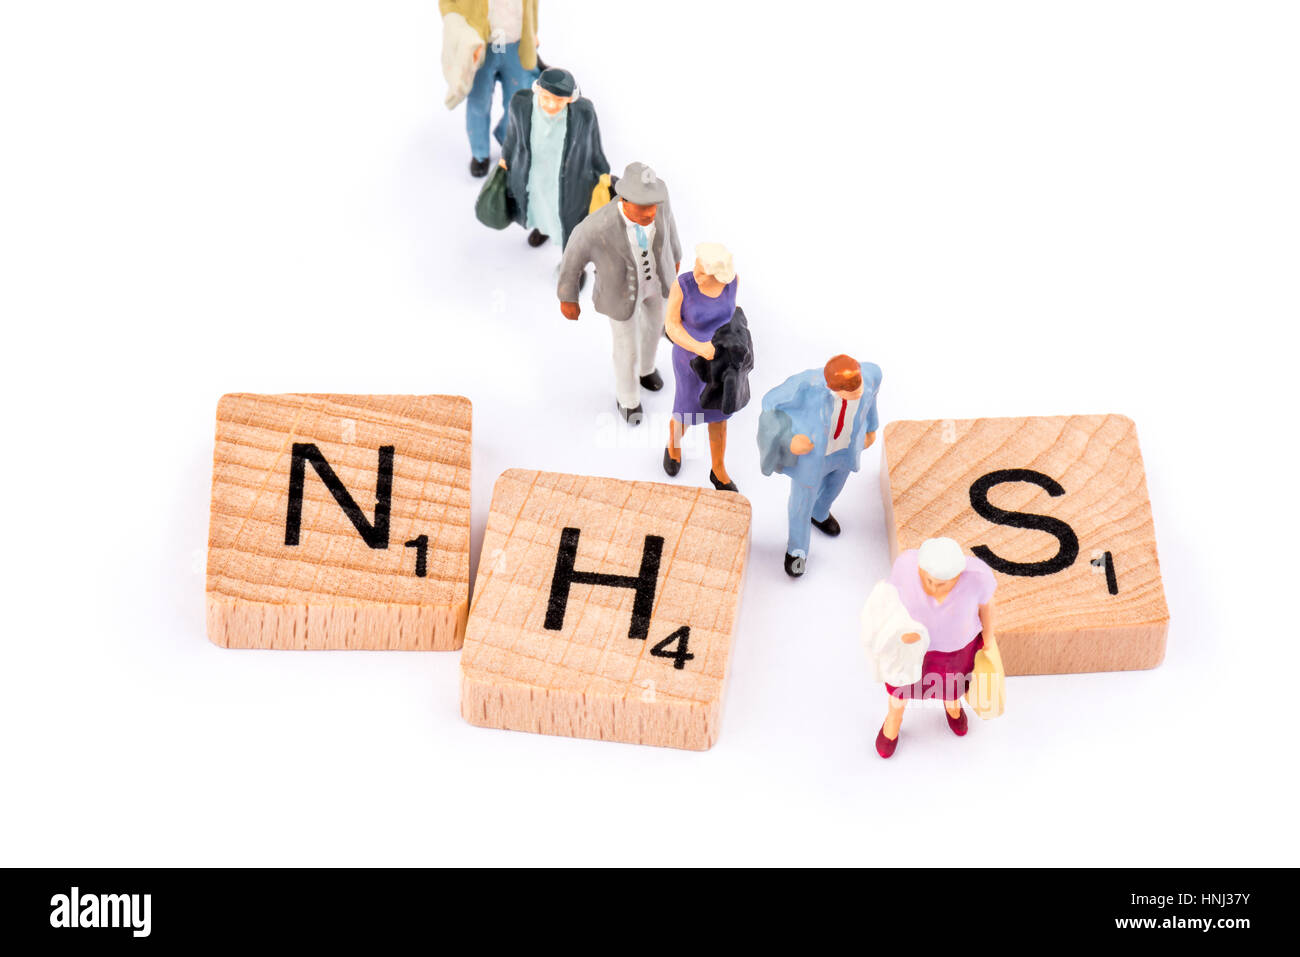 Scrabble letters make up the word NHS. A line of people walk between the the letters H and S. - Stock Image